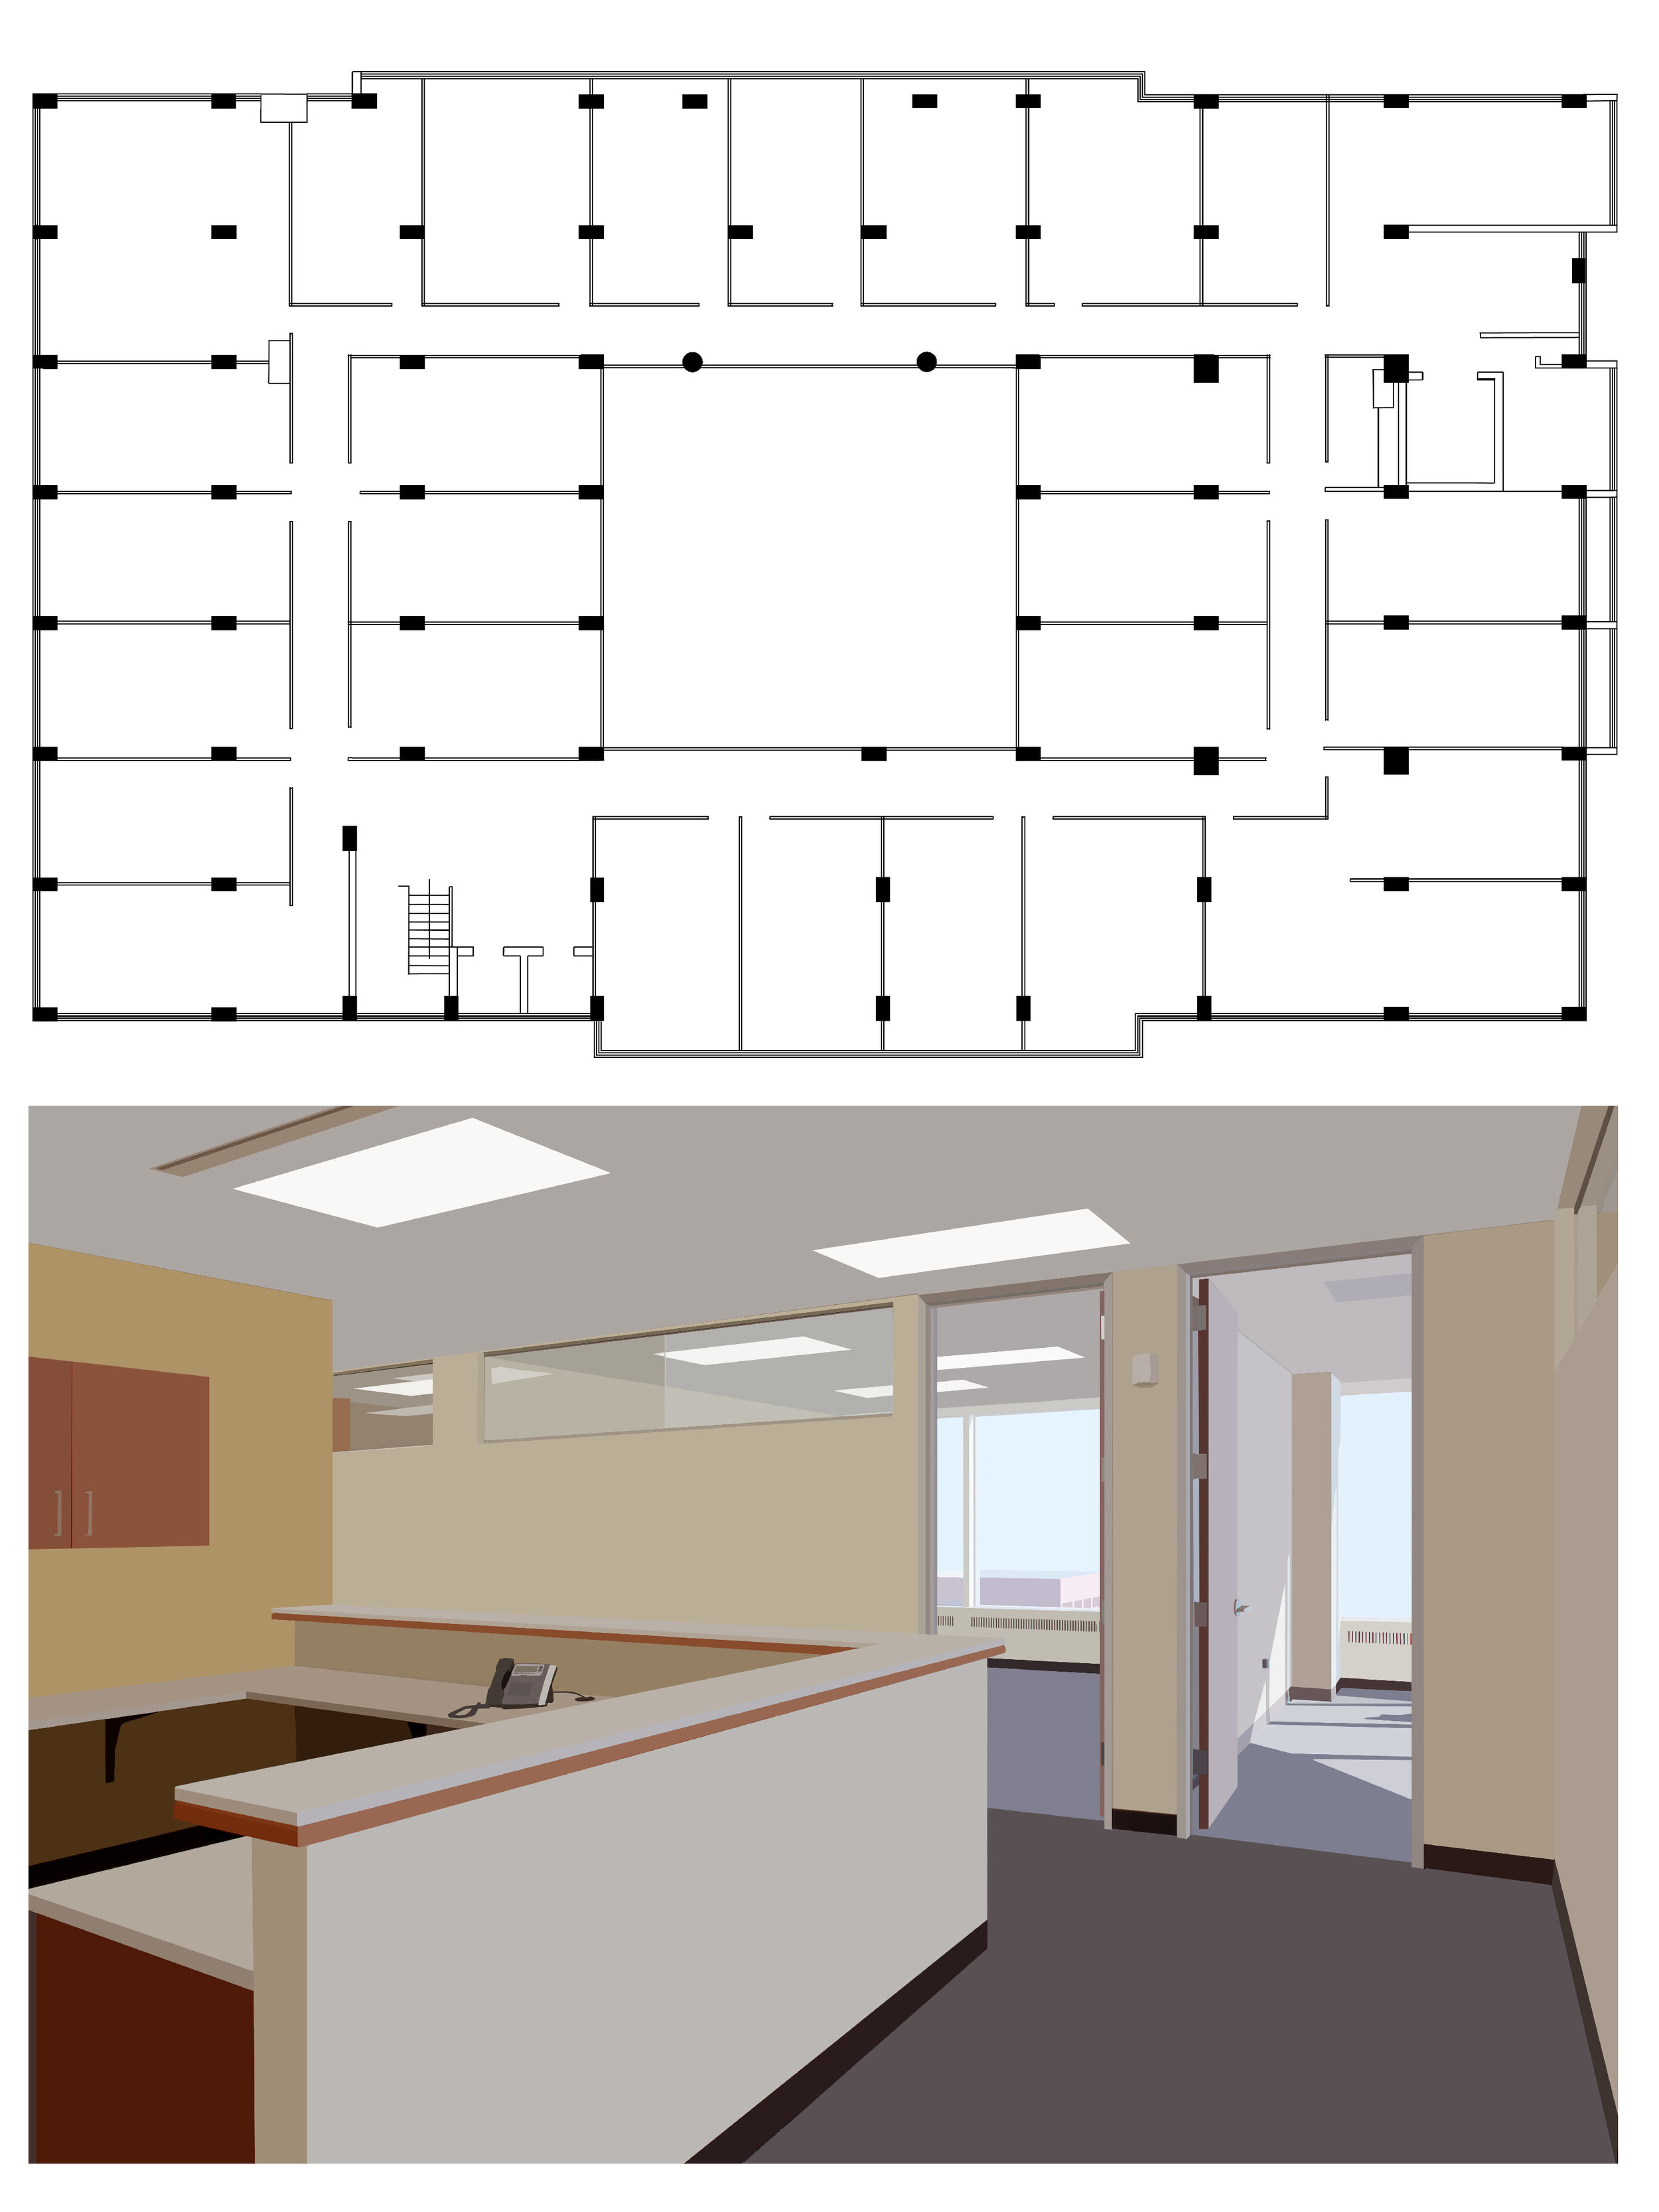 VACANT HIGH-RISE OFFICE SPACE